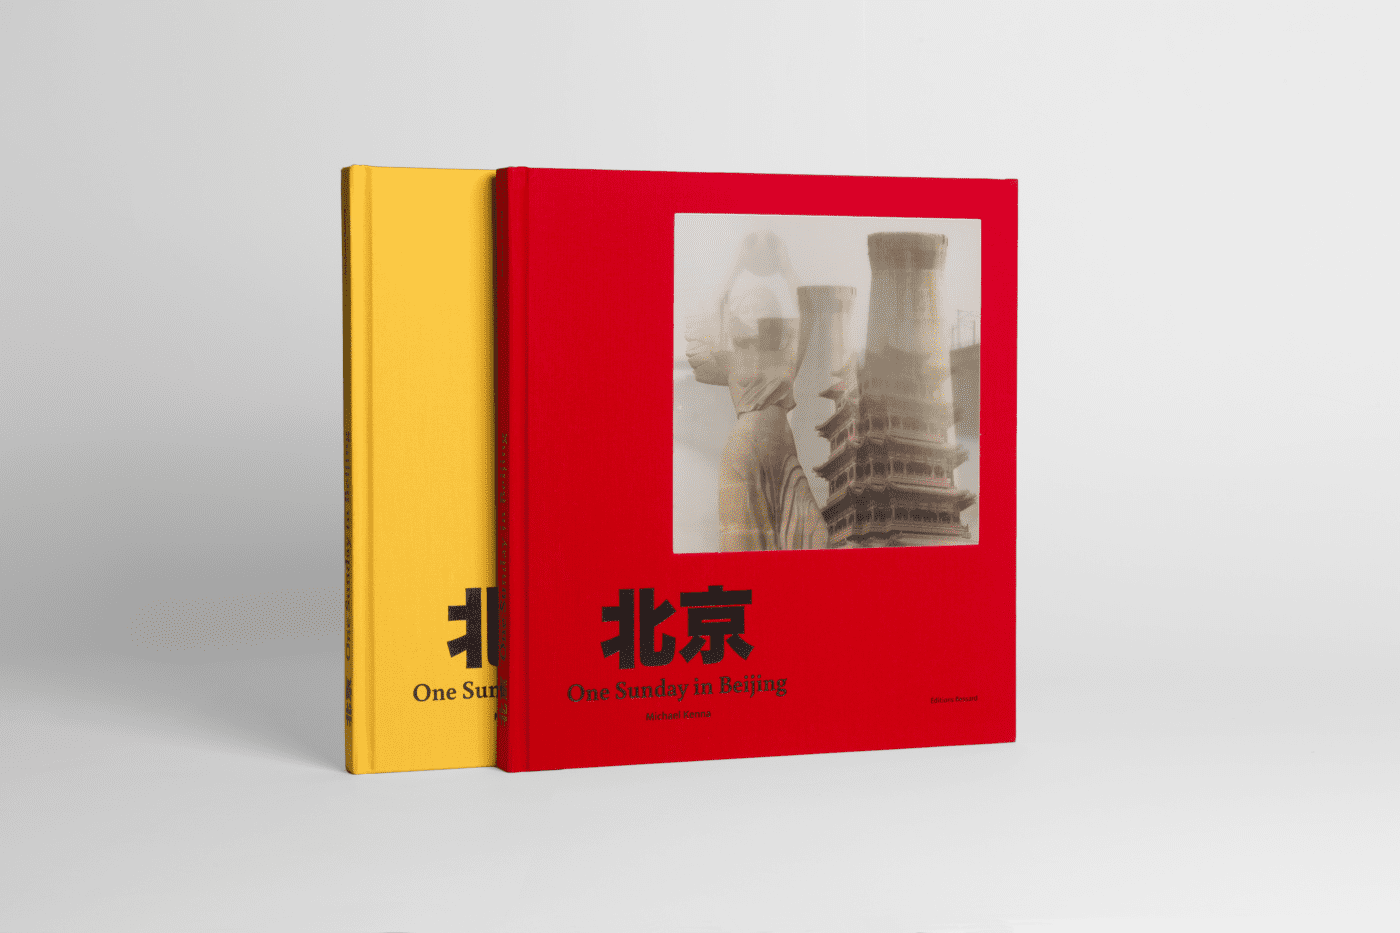 #MichaelKenna, #OneSundayInBeijing (mon hommage à #ChrisMarker Un dimanche à Pékin) Limited Edition of 700 copies, 350 with a yellow cover, 350 with a red cover, each with a lenticular cover and a 18cm x 19cm colour c-print enclosed in the book (souvenir of Beijing from the artist); Note that each colour will come with a different print.Size book 290mm X 310 mm #HappyPublisher Photo by the designer of the book @JoannaStarck text Fabien Ribery & Pierre Bessard